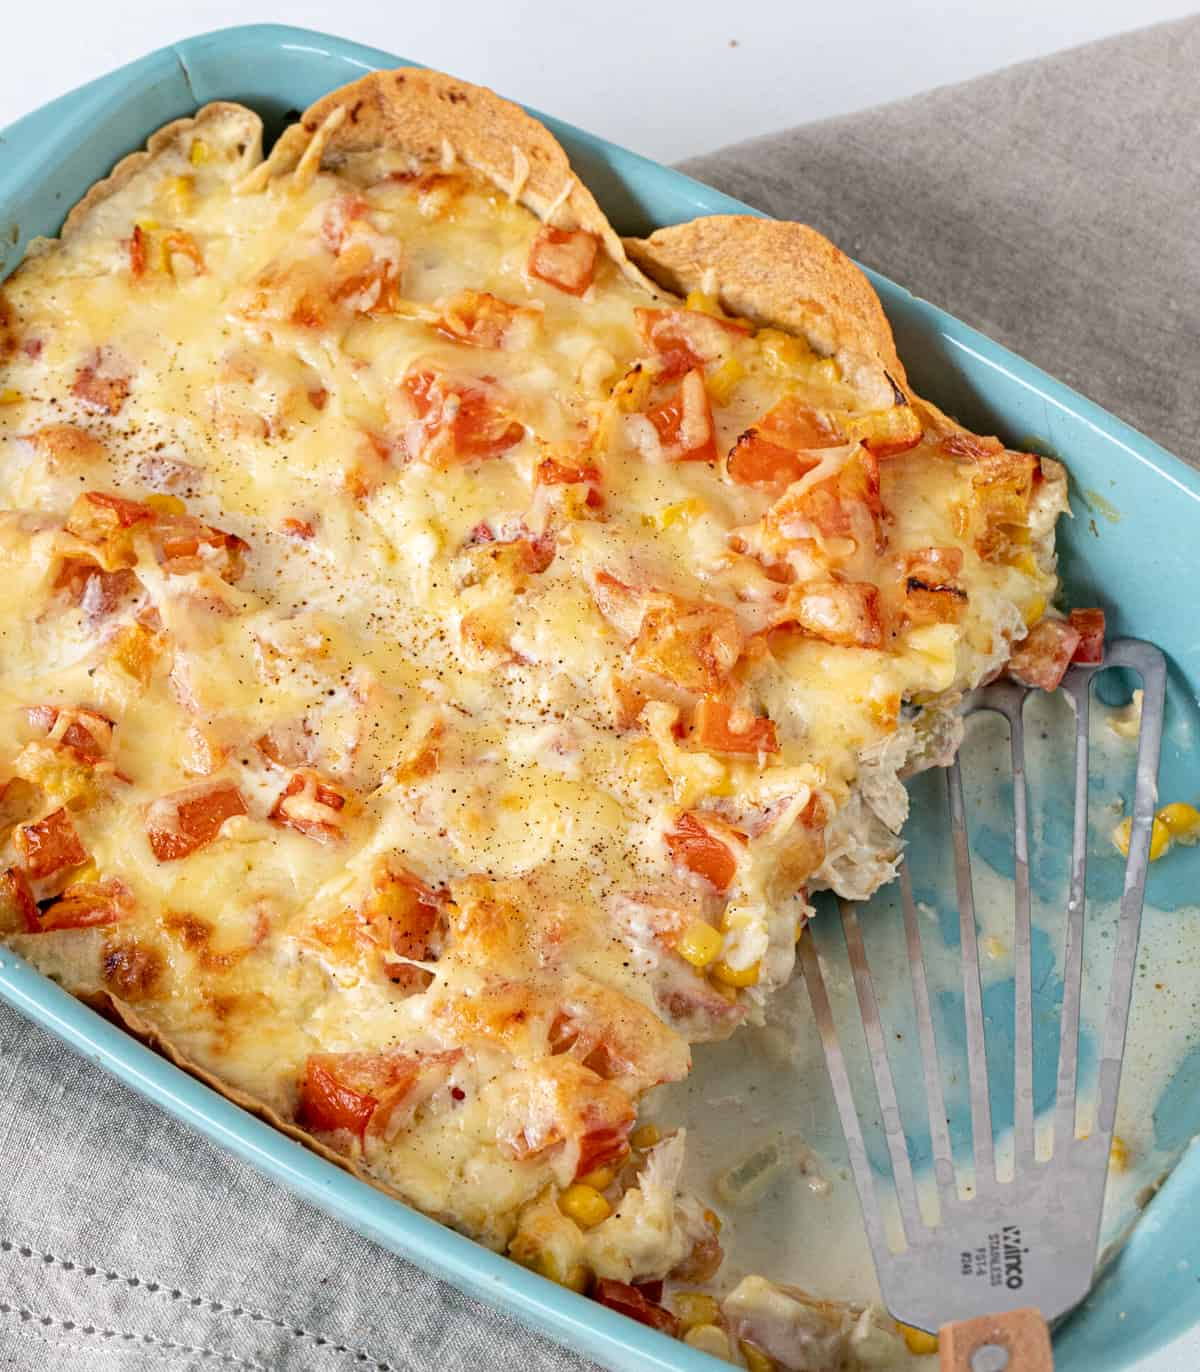 Top view of light blue dish with Mexican lasagna